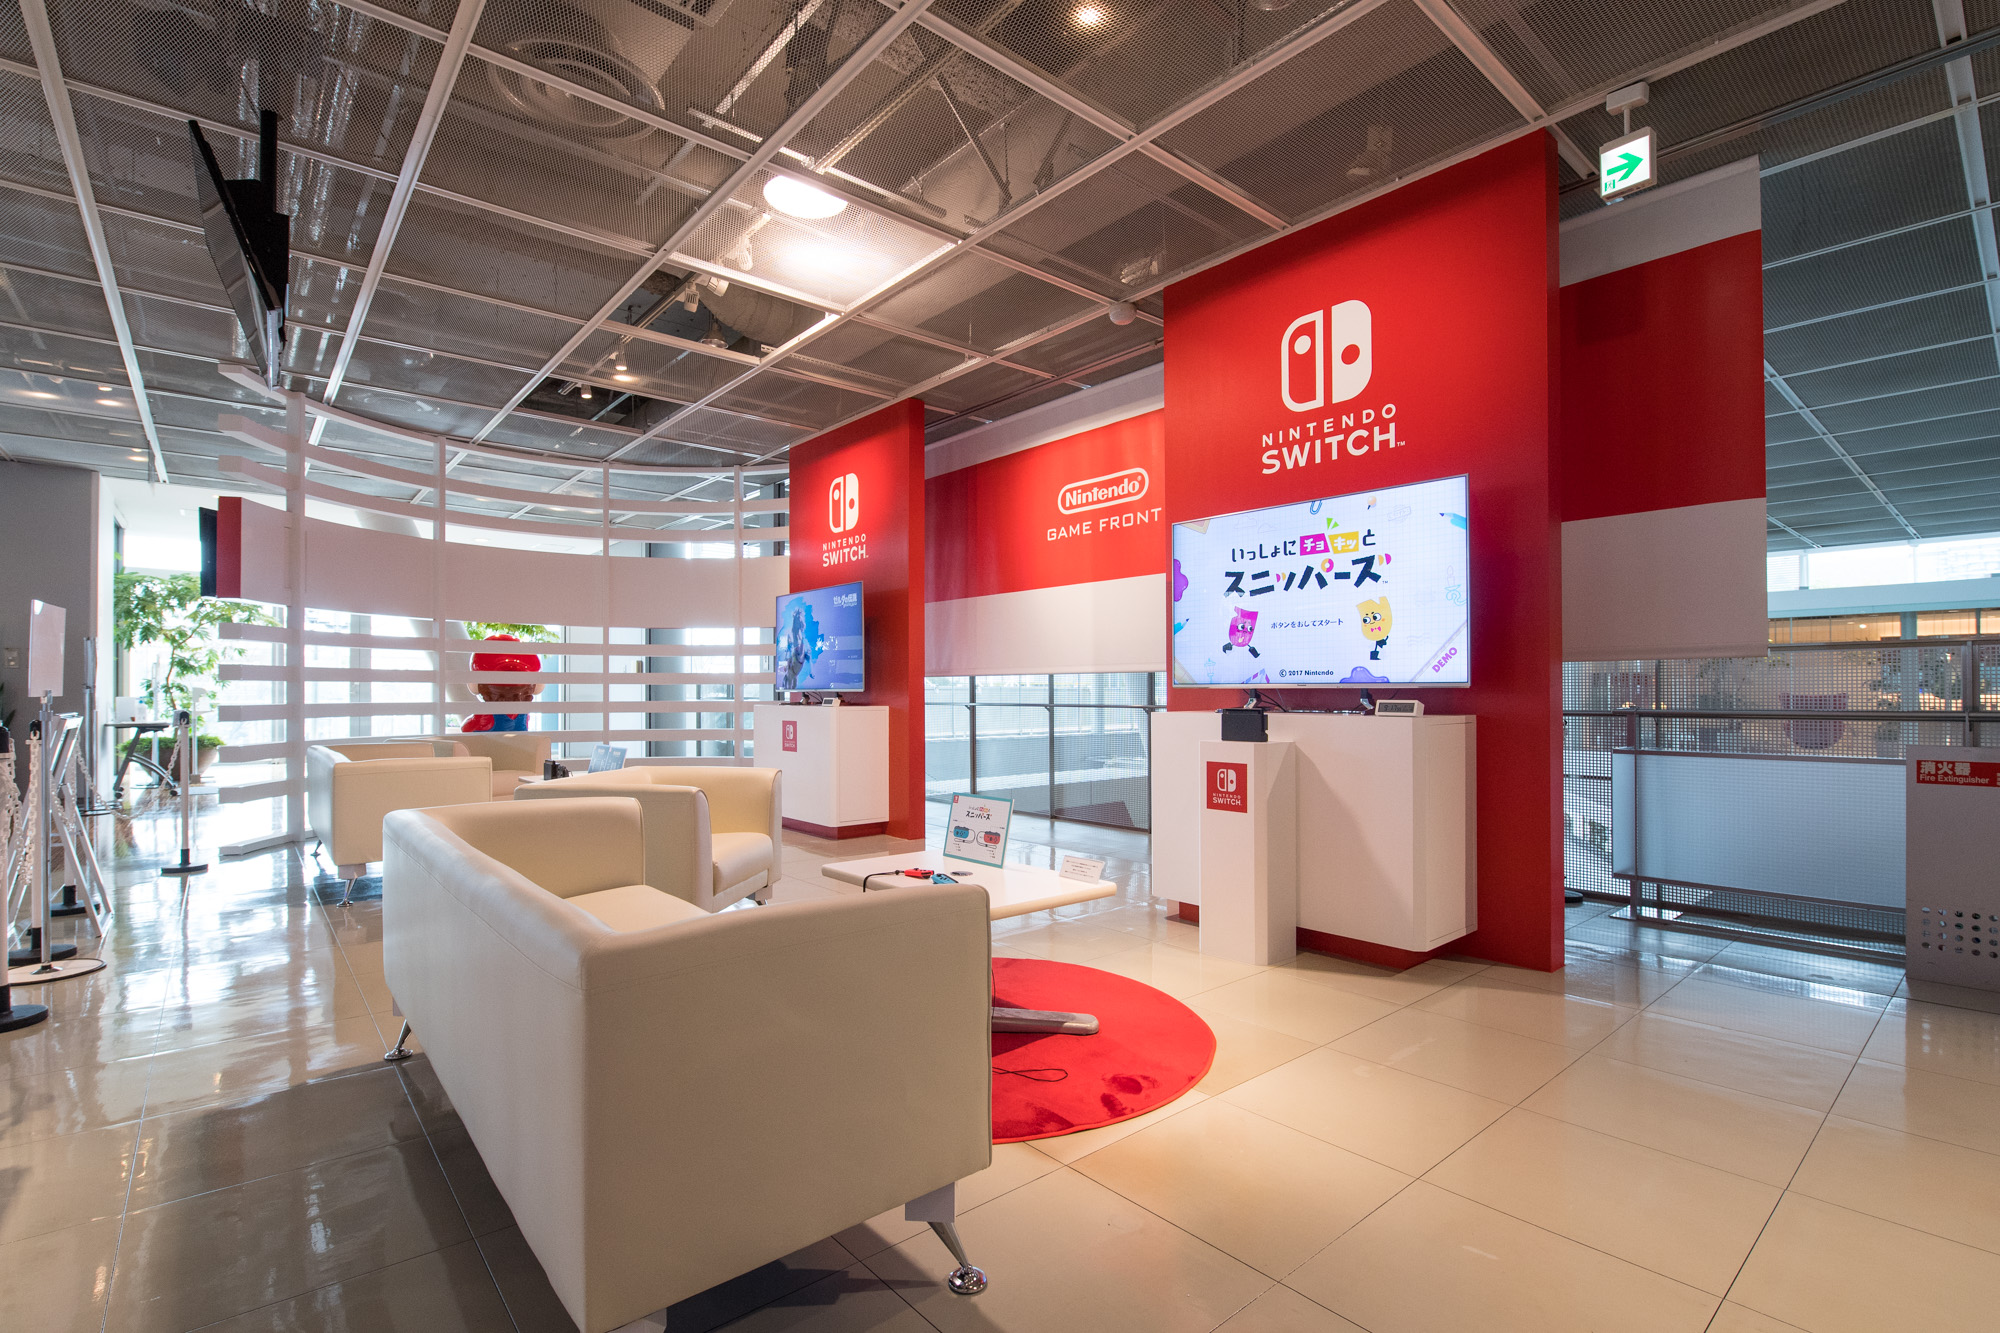 Nintendo Switch News March 7 Power Consumption Game Soldam Drop Connect Erase English The Front Is Open Every Day Except Monday With Exception Of 20th And 27th New Years From 10am To 6pm